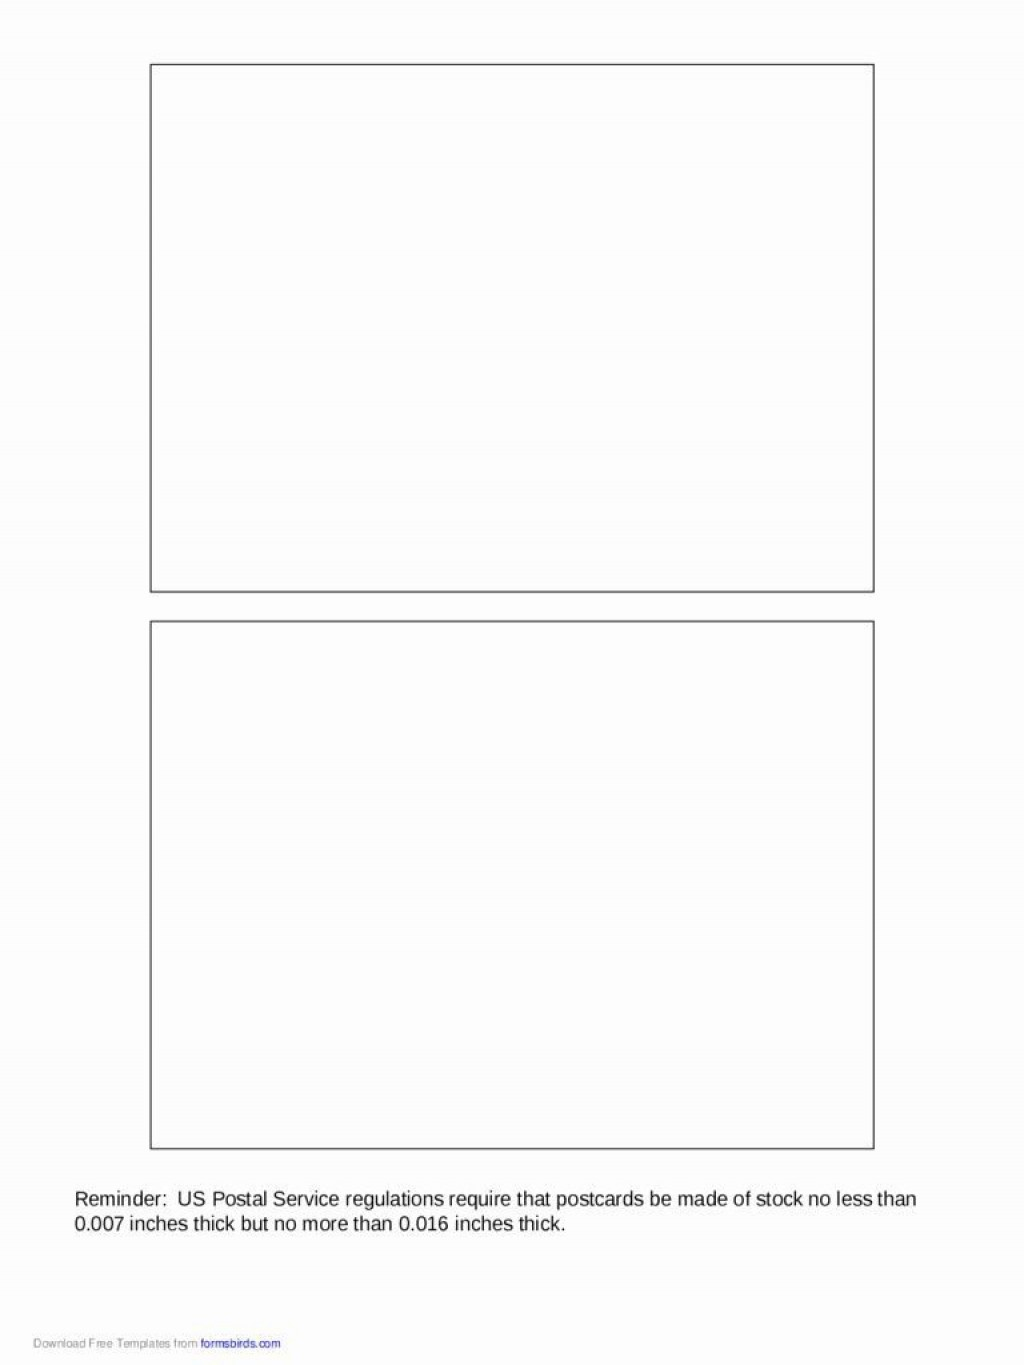 003 Fantastic 5 X 7 Postcard Template Microsoft Word Photo Large